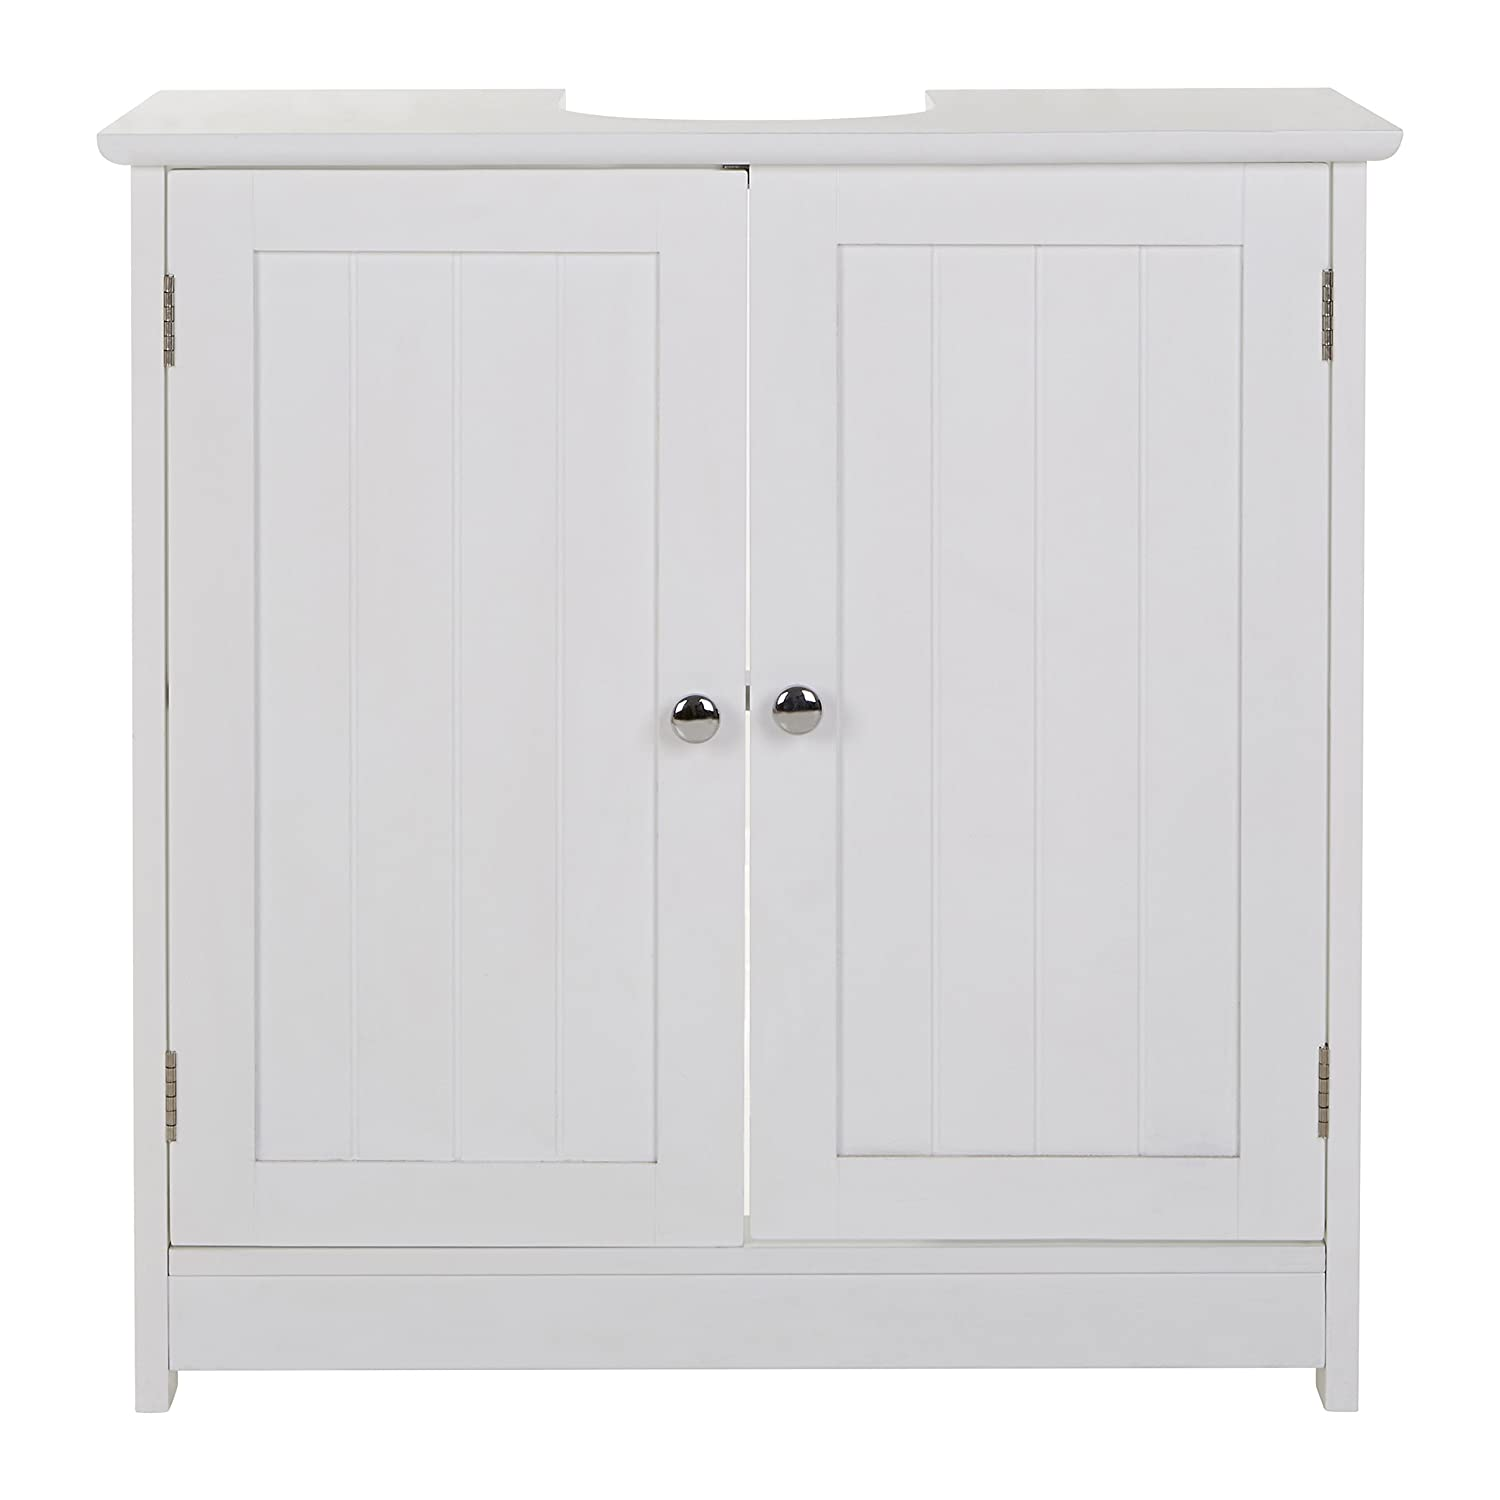 White Premier Housewares Portland Under Sink Cabinet